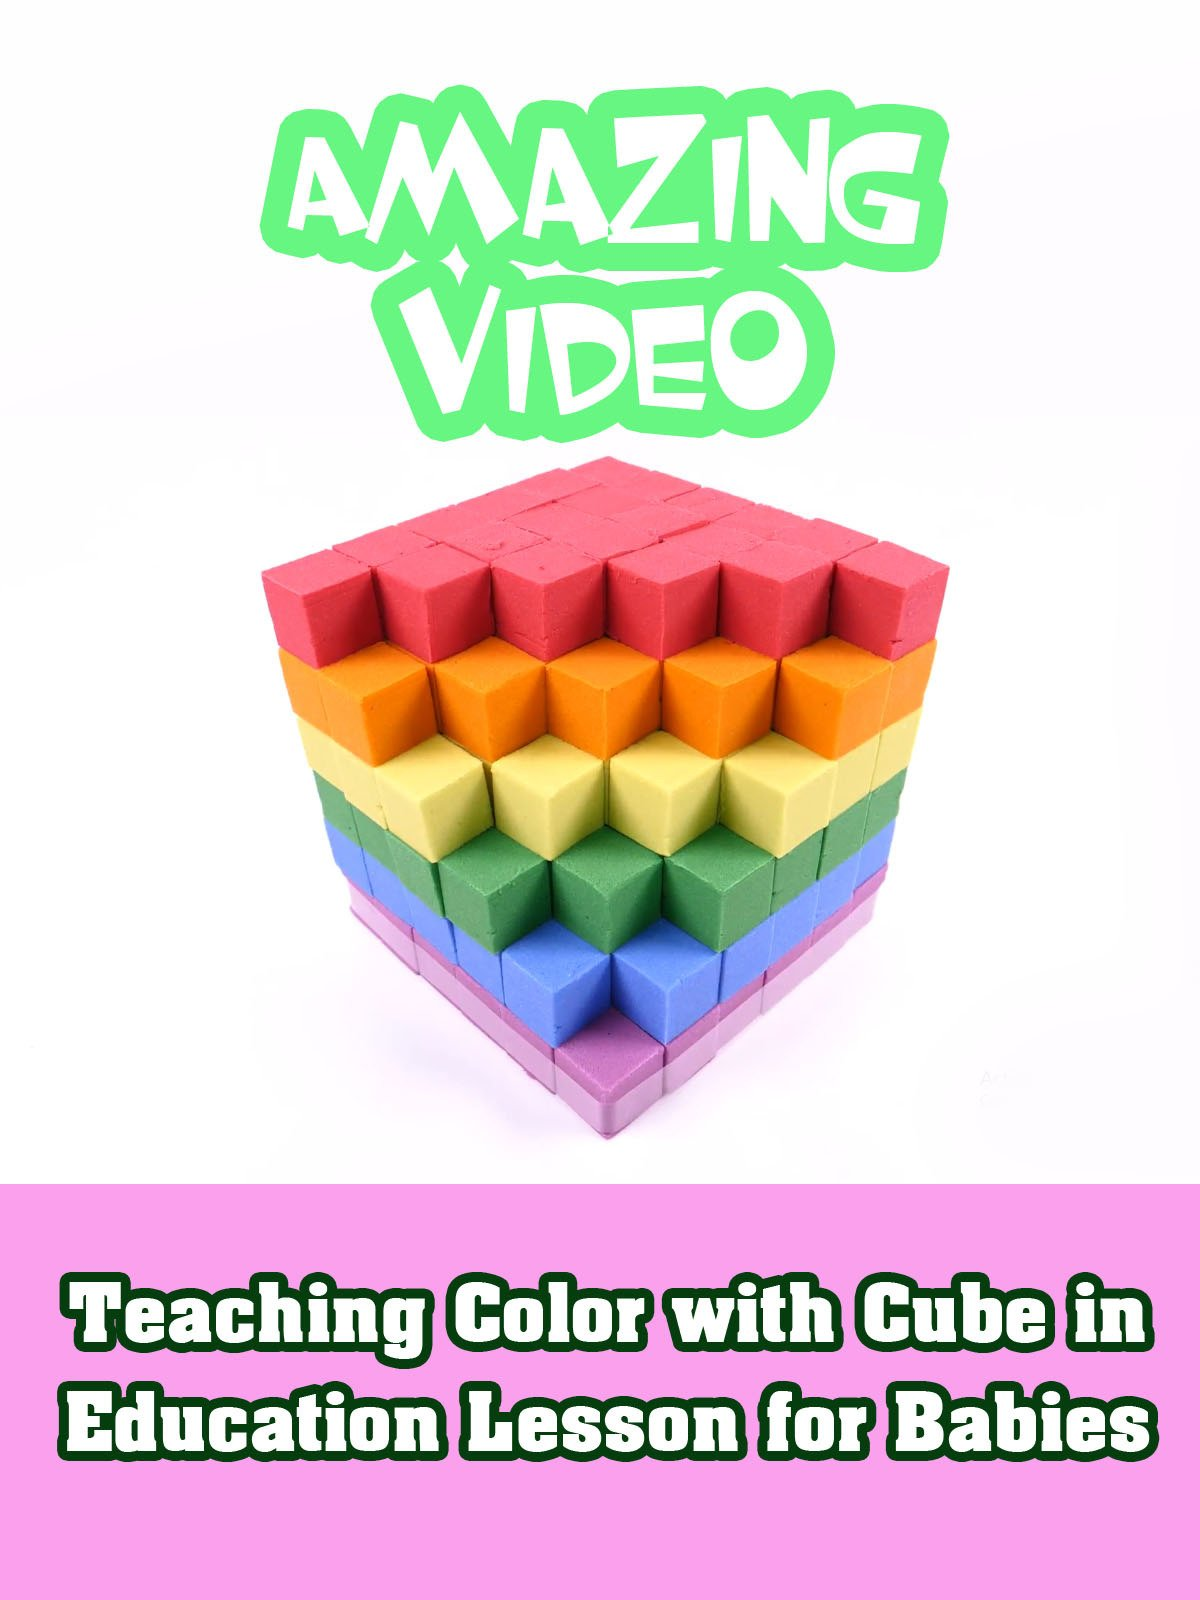 Teaching Color with Cube in Education Lesson for Babies